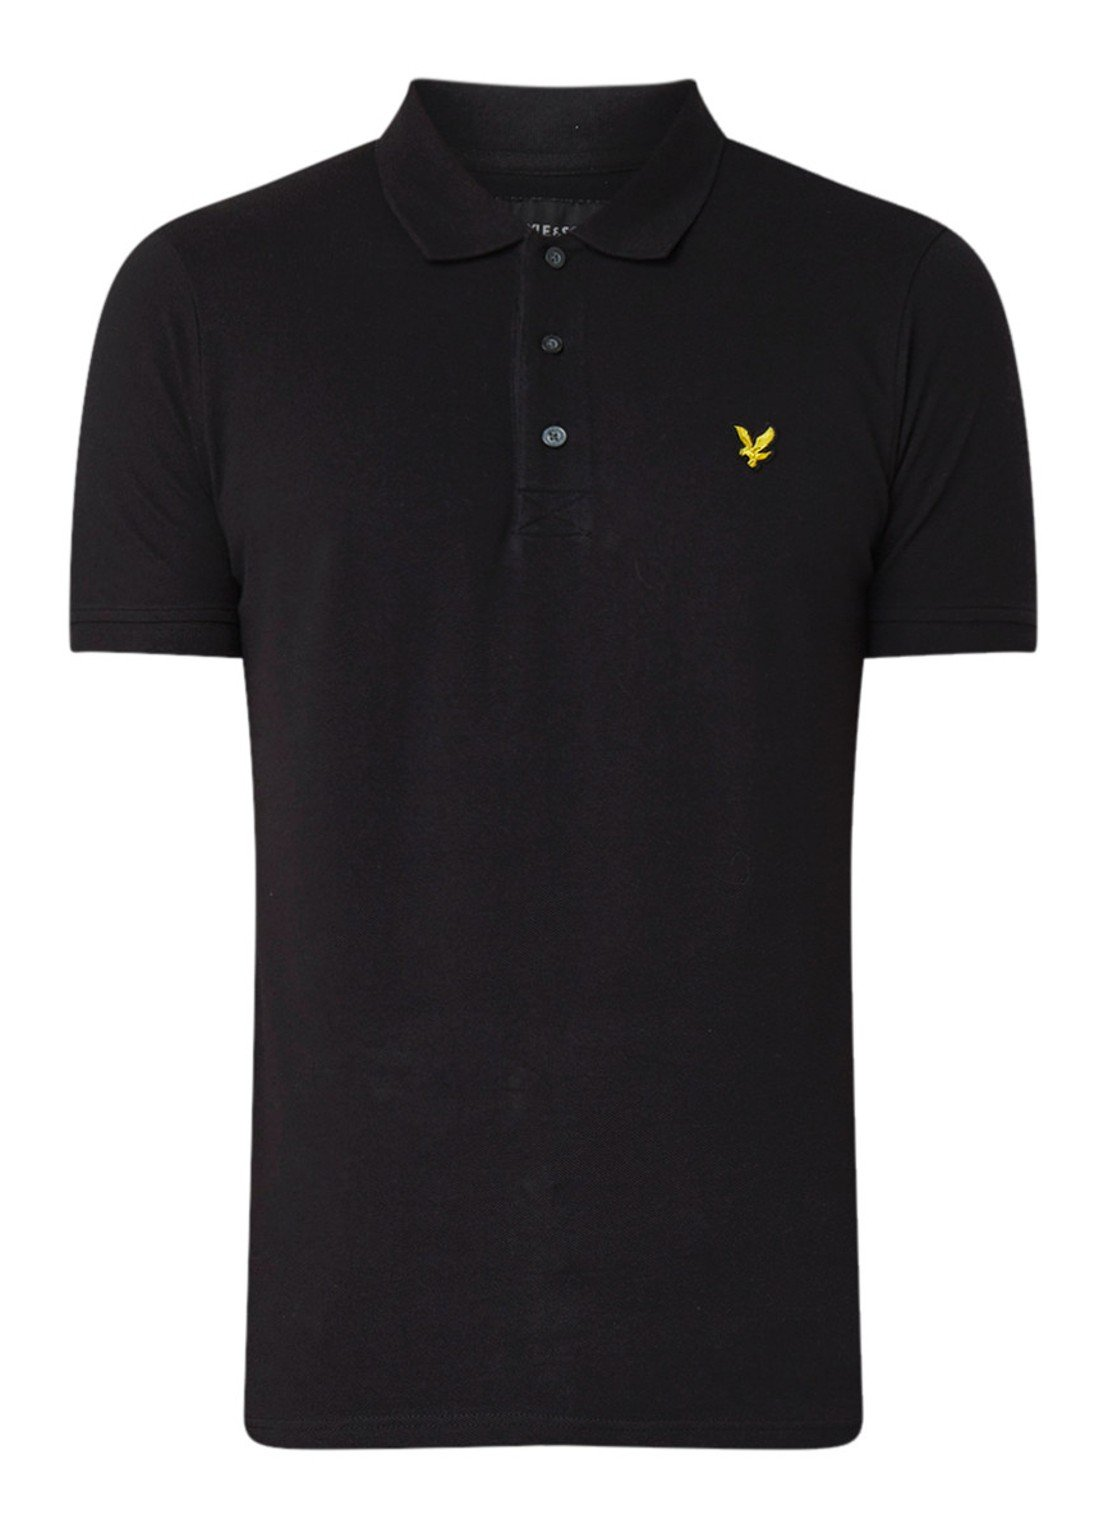 Lyle&Scott Polo slim stretch in het zwart, slim fit model.